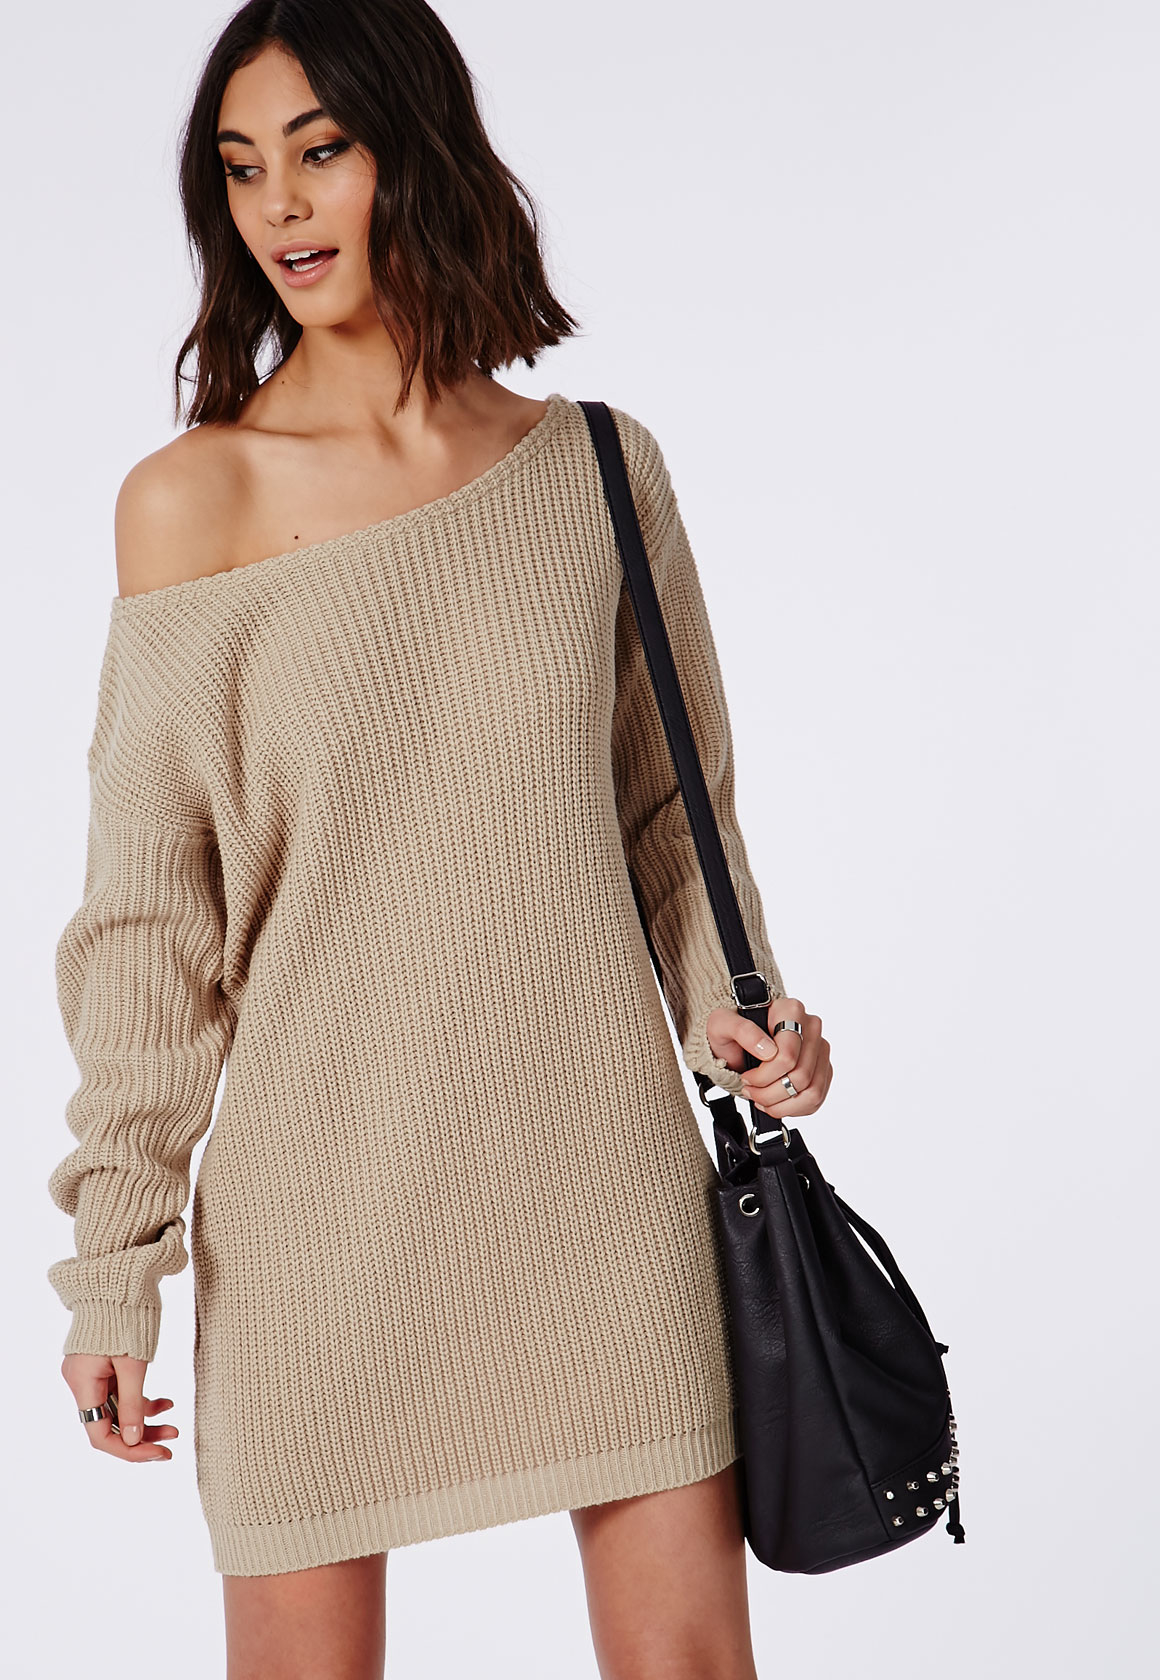 b79870f56a46 Lyst - Missguided Ayvan Off Shoulder Knitted Sweater Dress Light ...